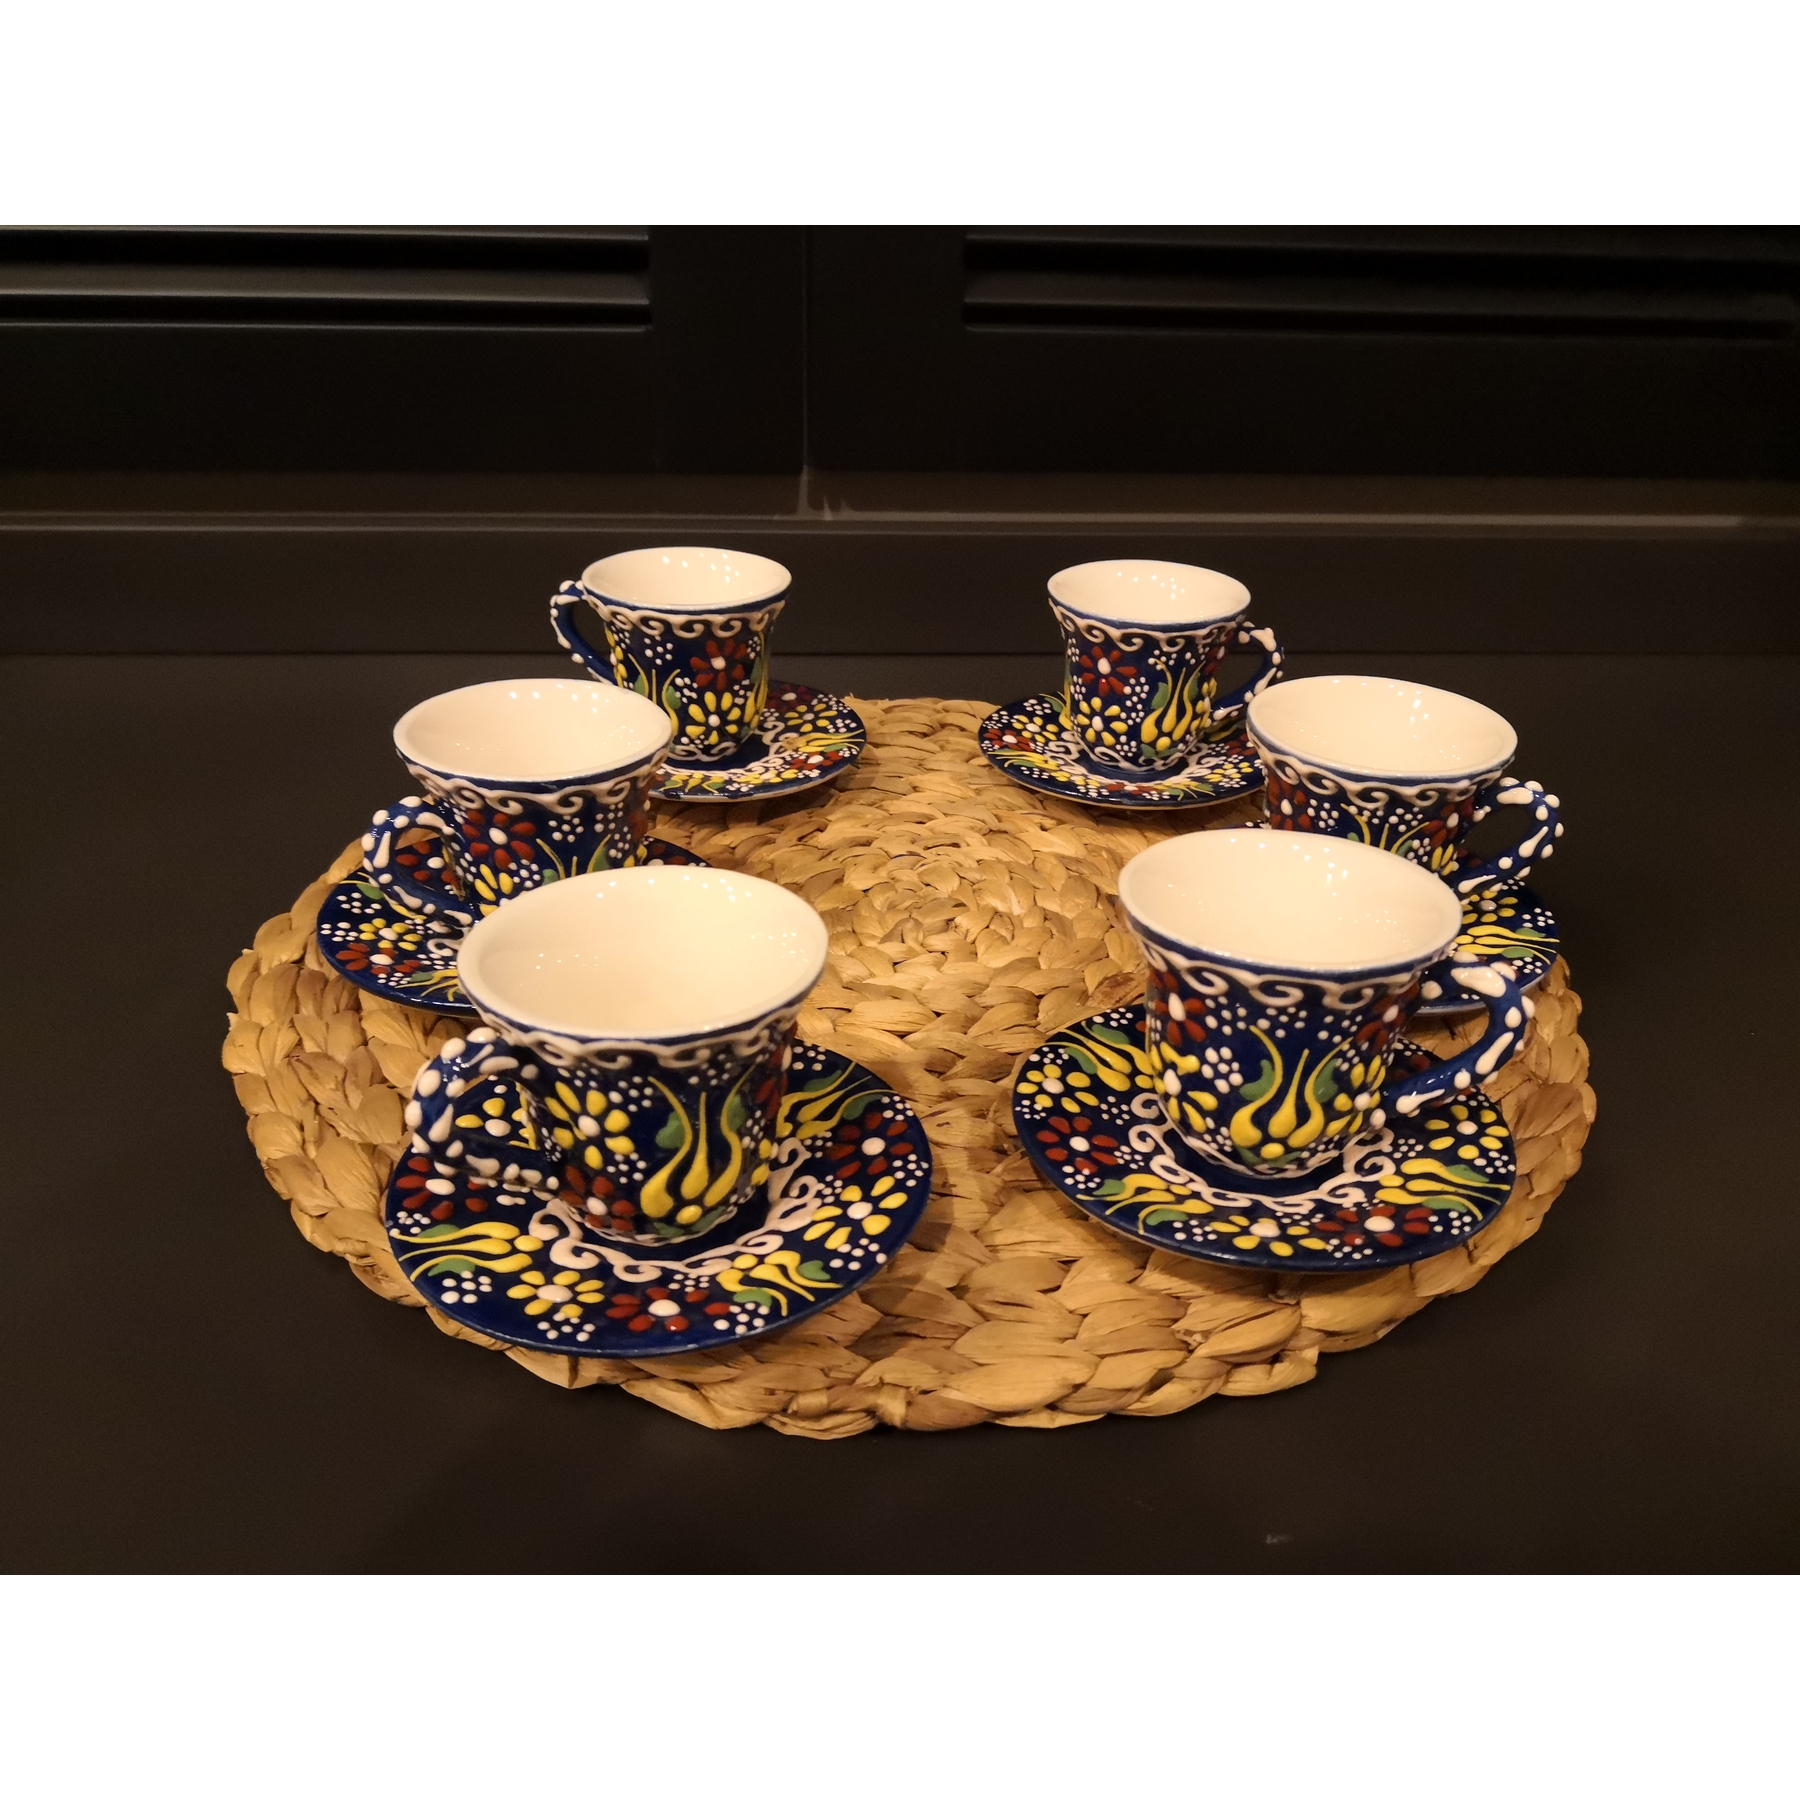 Set Of 6 Ceramic Ottoman Turkish Coffee Cups Set With Turkish Coffee Gift Made In Turkey Arabic Coffee Set Tea Cups Set Espresso